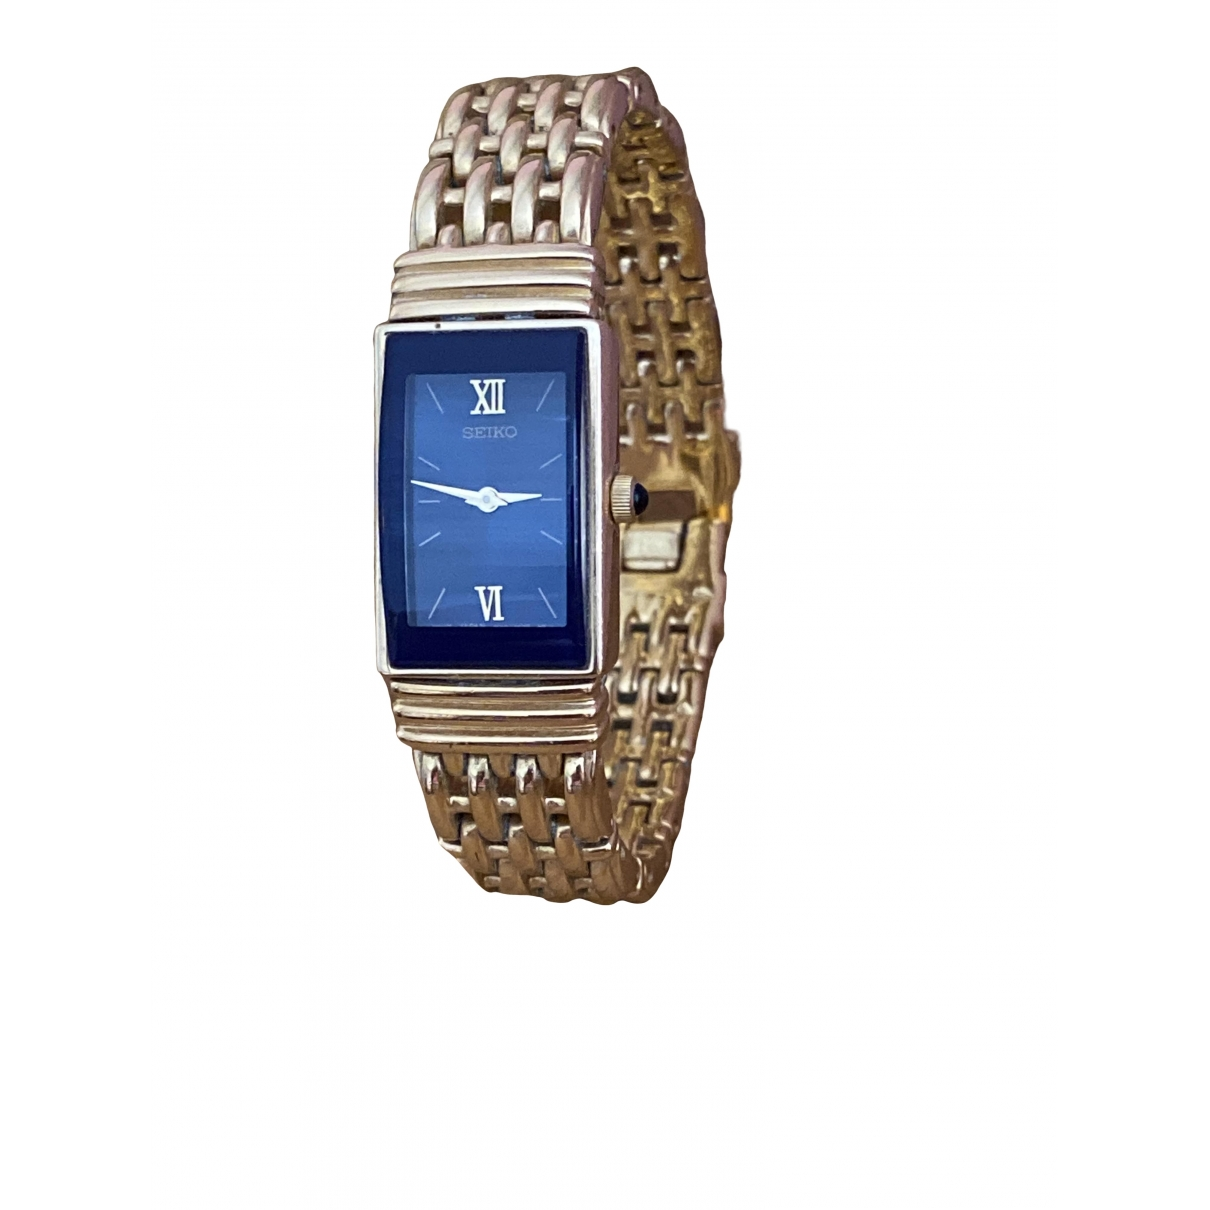 Seiko \N Blue Gold plated watch for Women \N